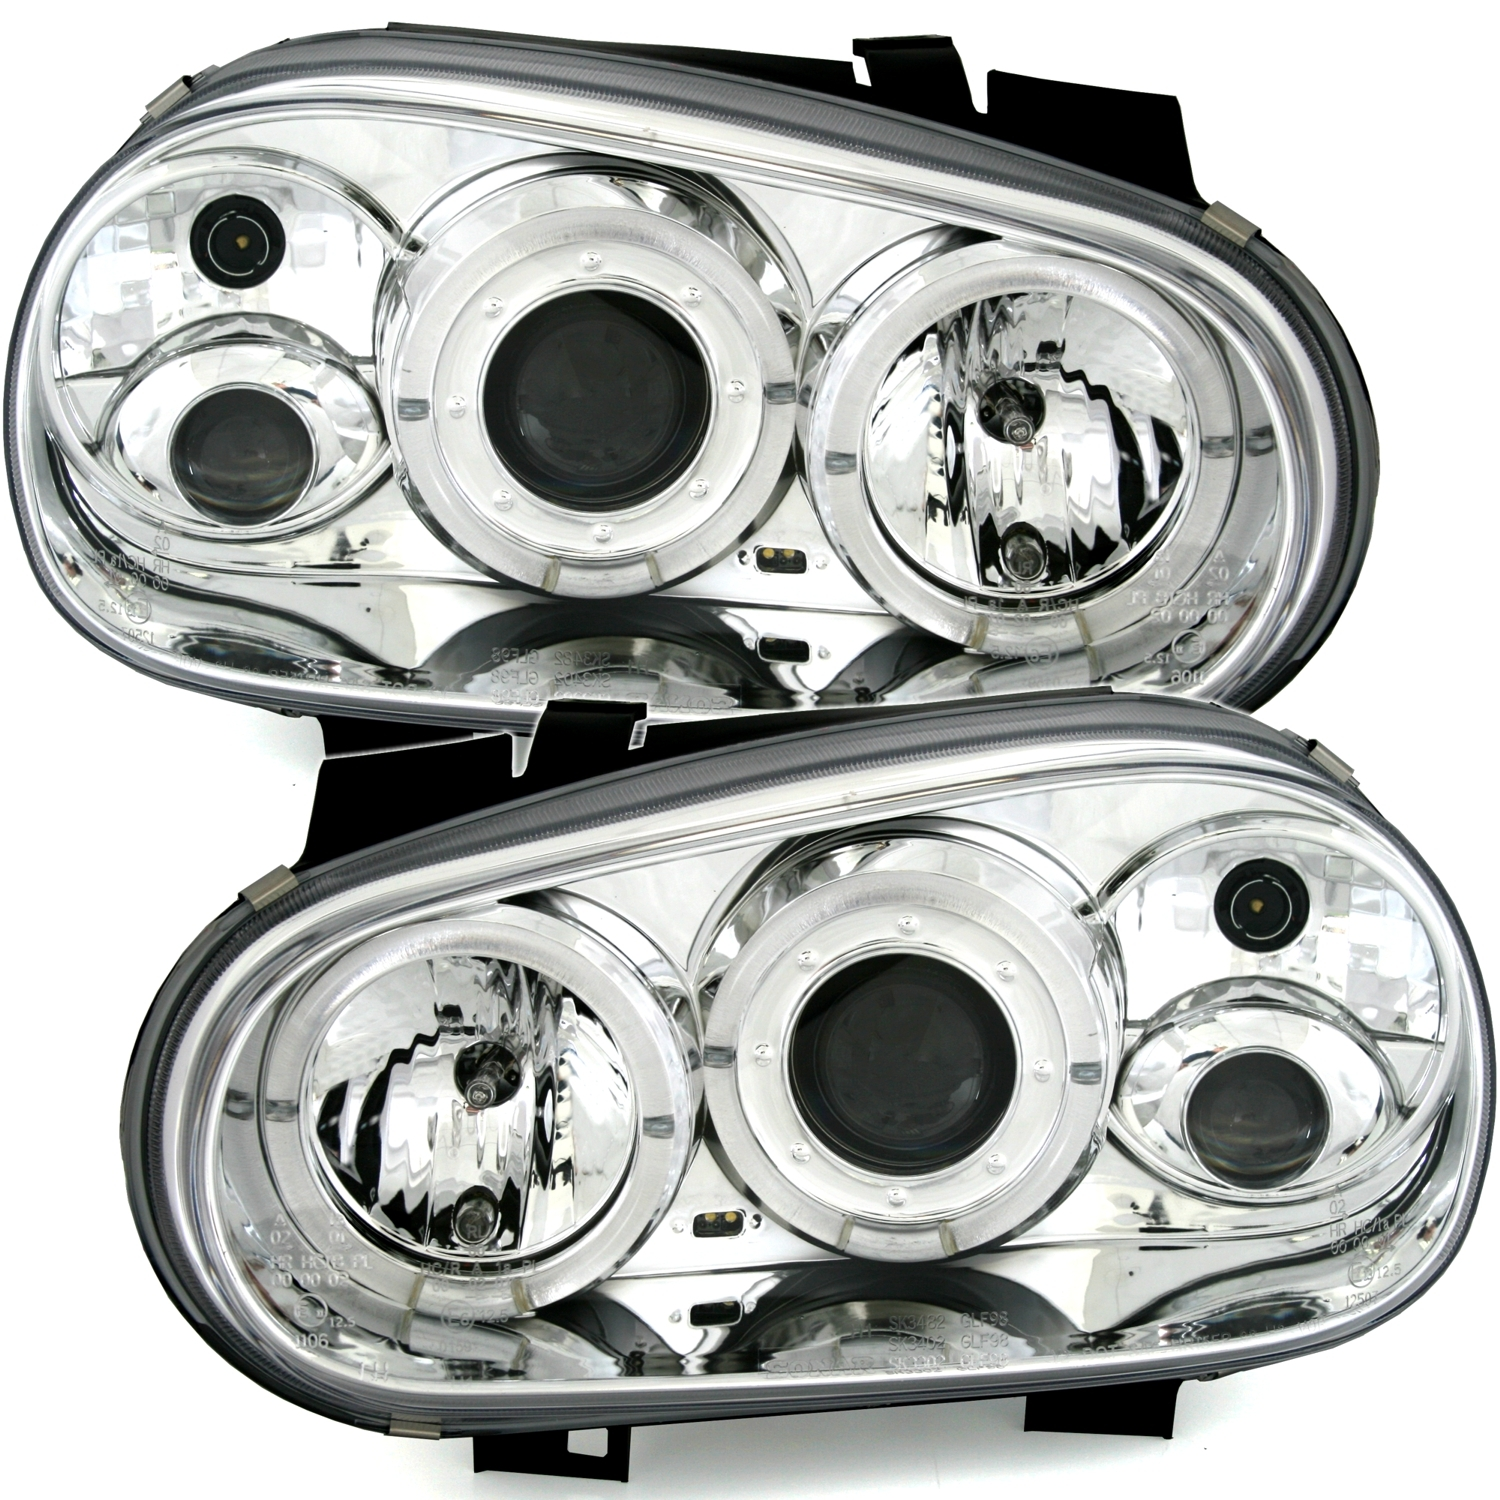 VW GOLF 4 09.97-09.03 ANGEL EYES CCFL cromado